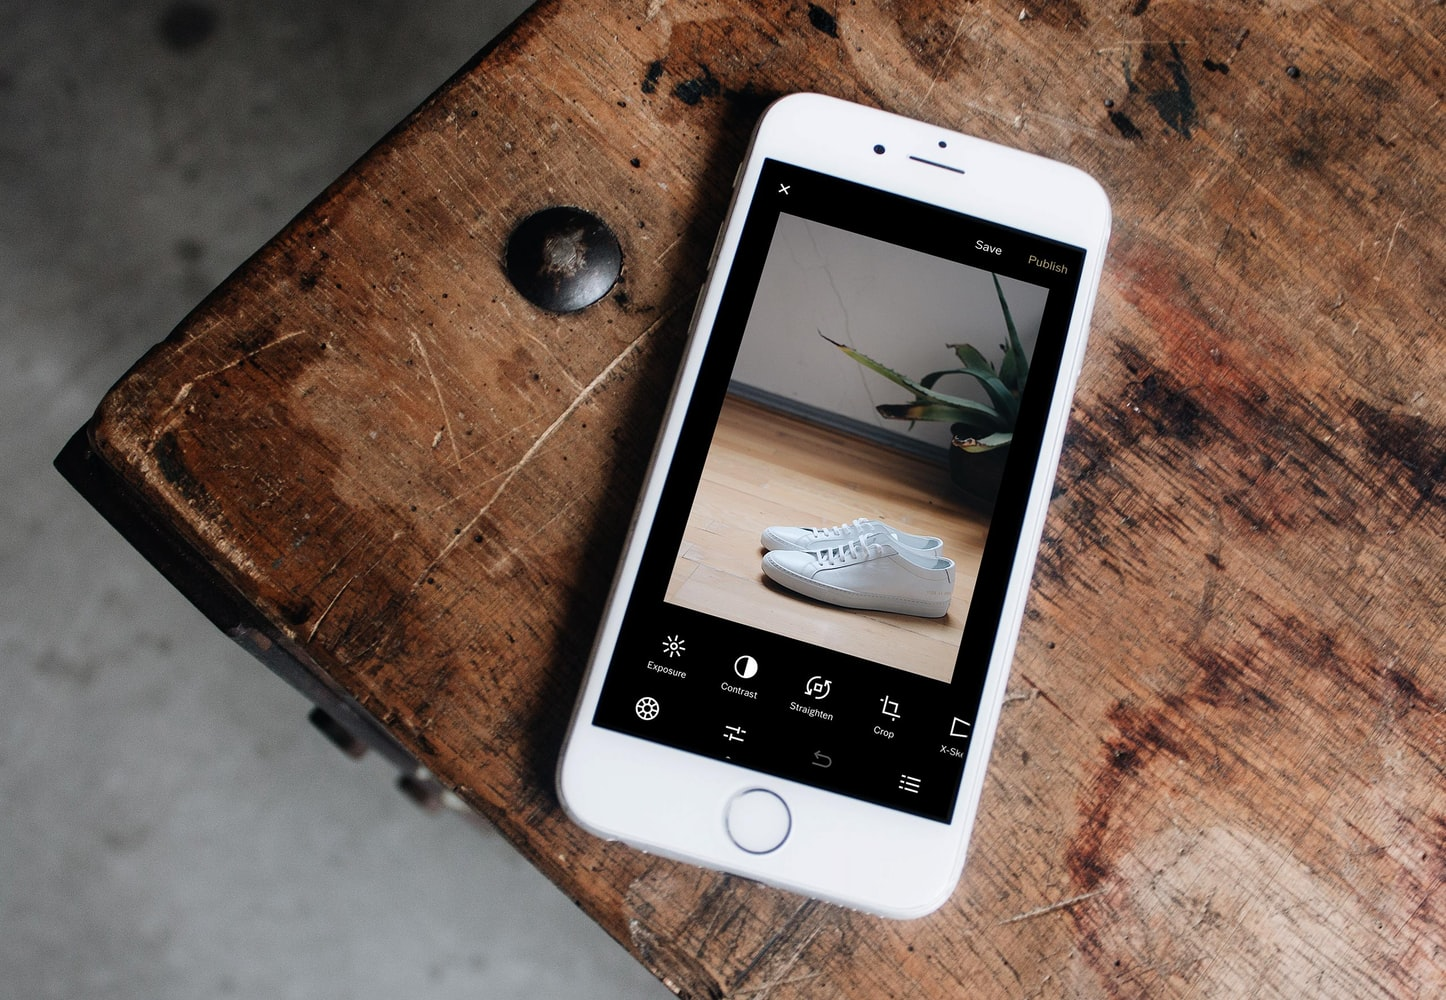 Mobile showing pair of shoes. Source: Unsplash